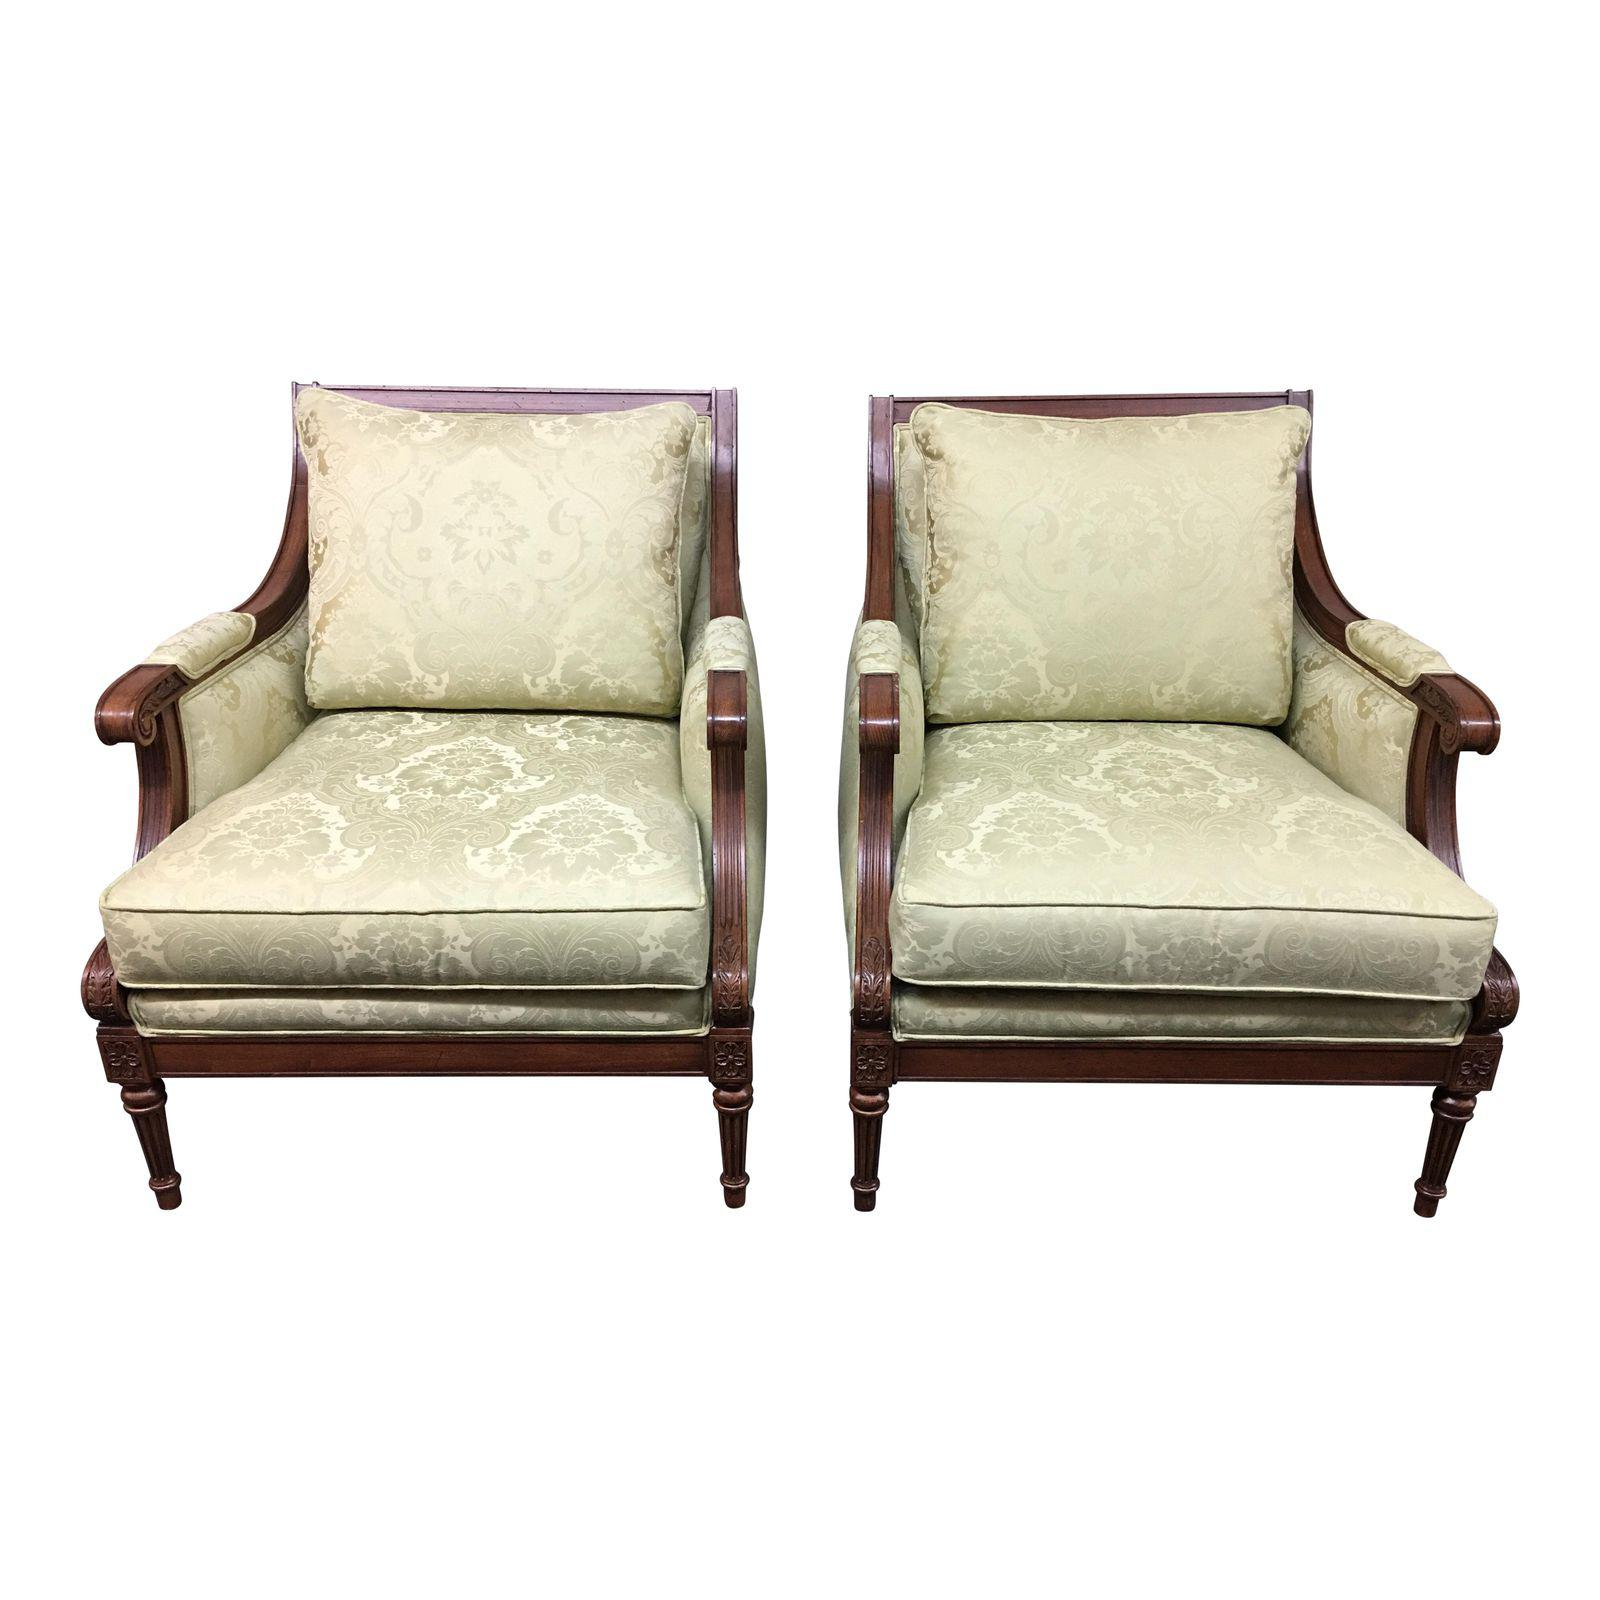 Ethan Allen Fairfax Arm Chairs, A Pair. Original Price: $3,200.00